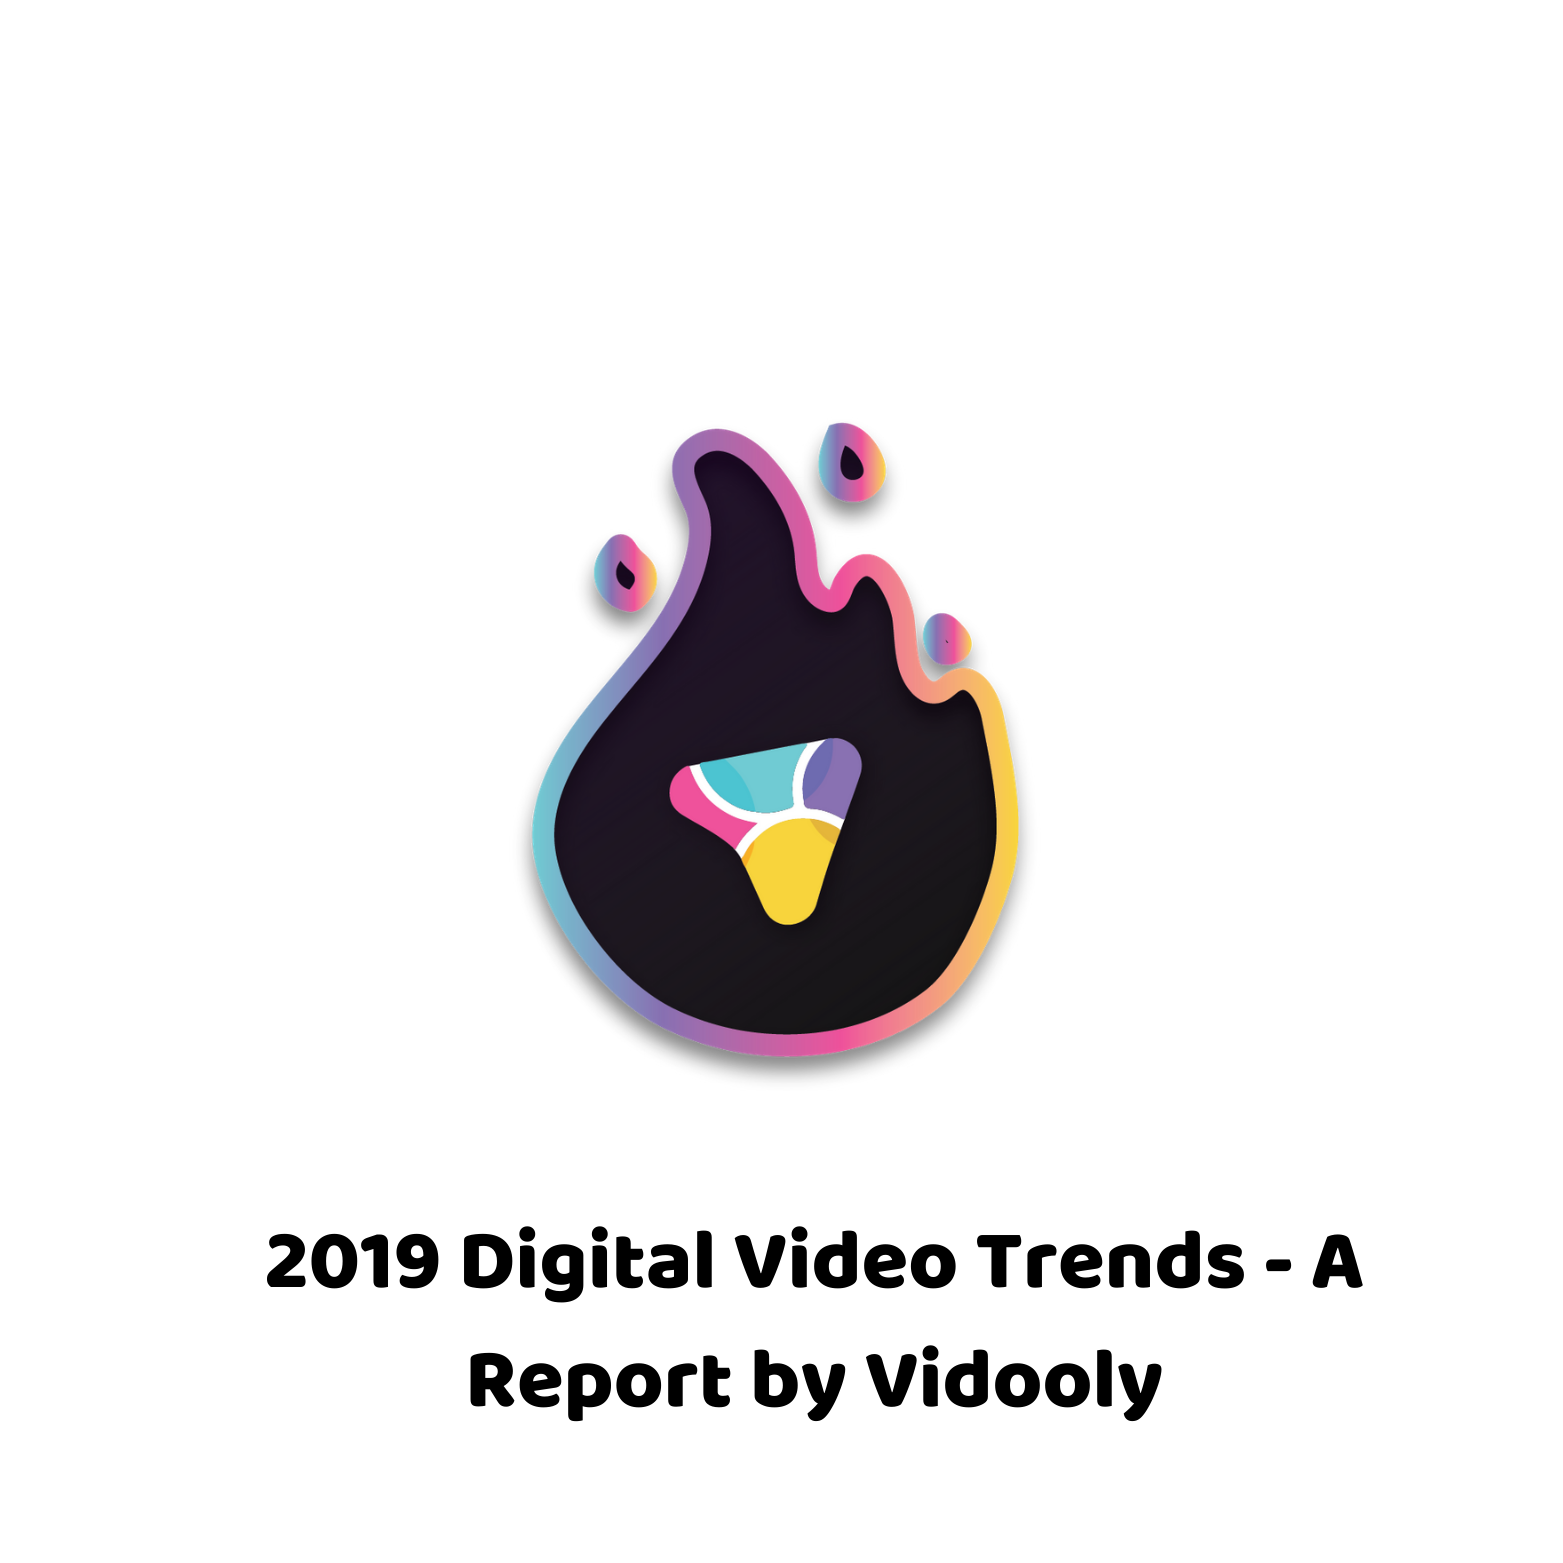 2019 Digital Video Trends